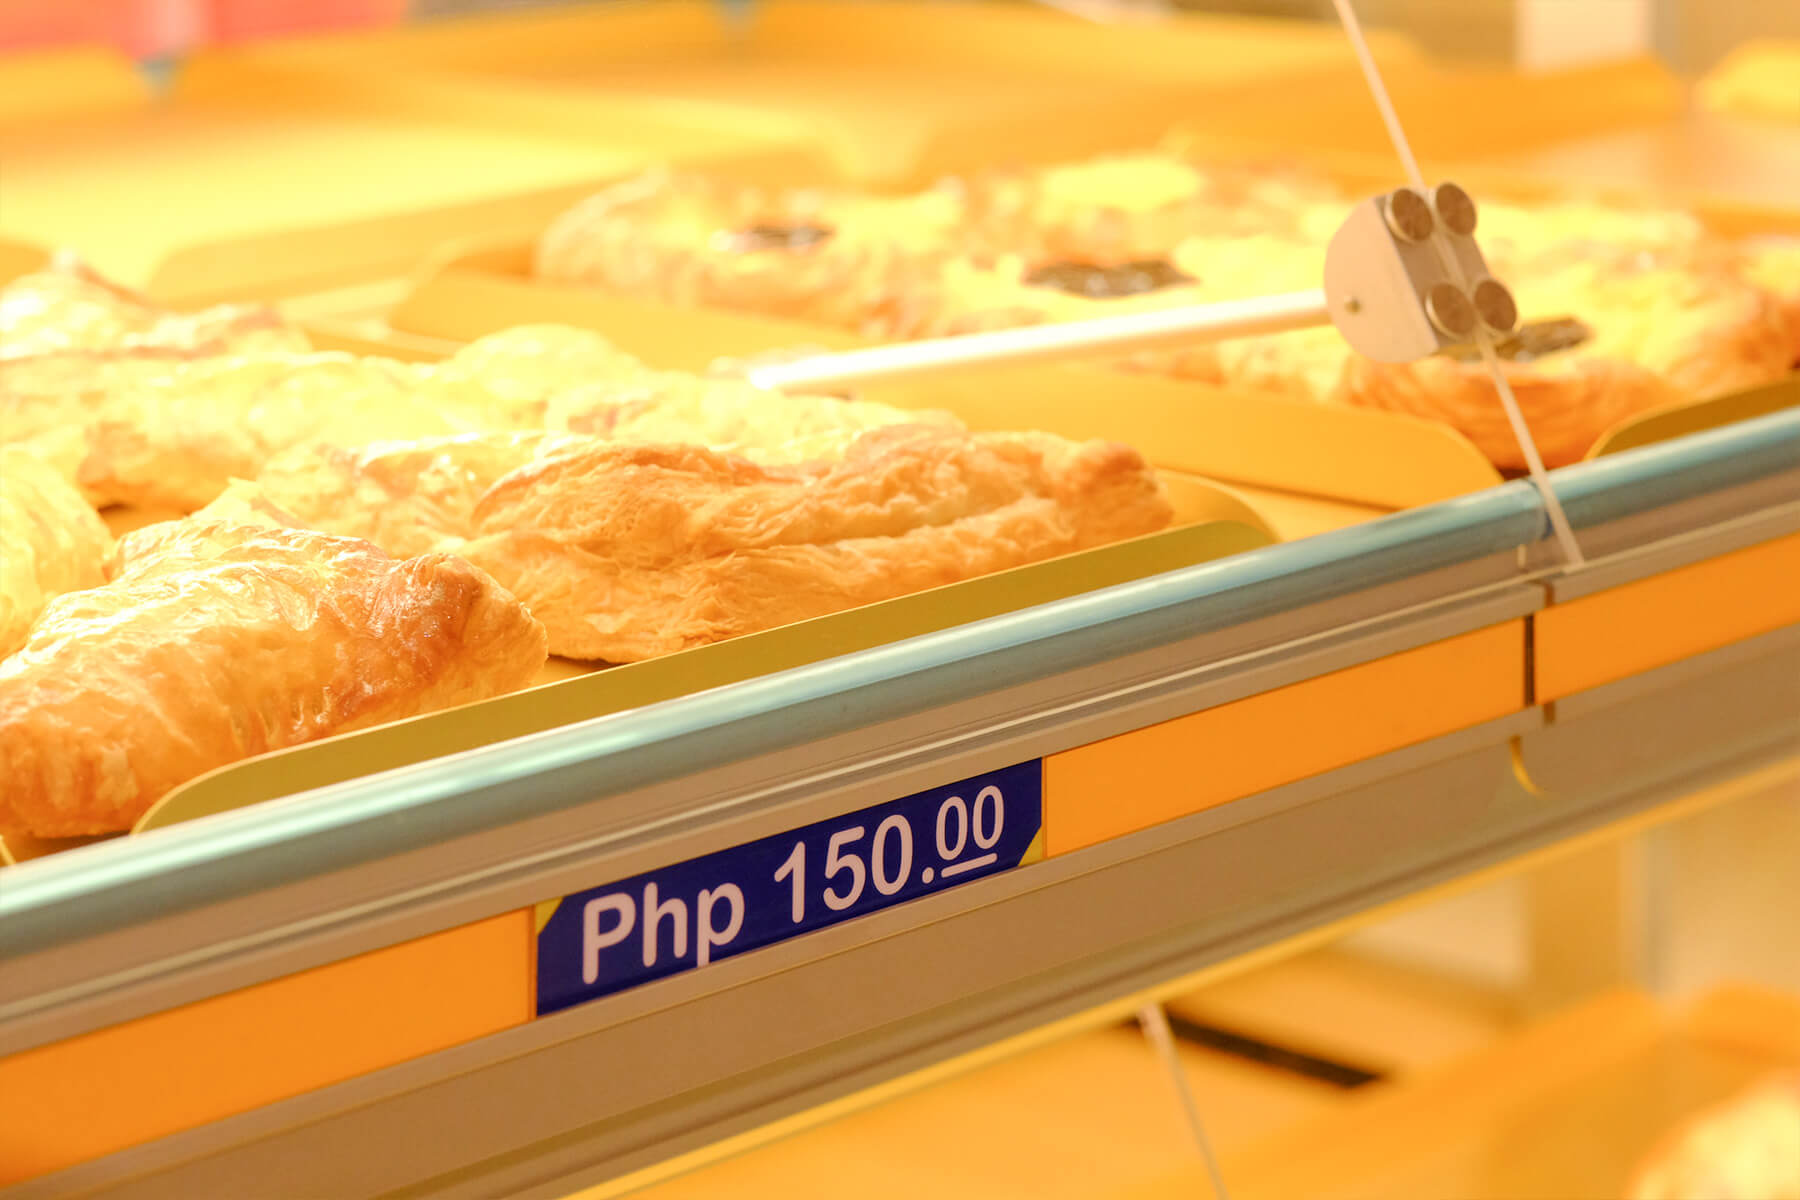 Optima Self-Service Bakery